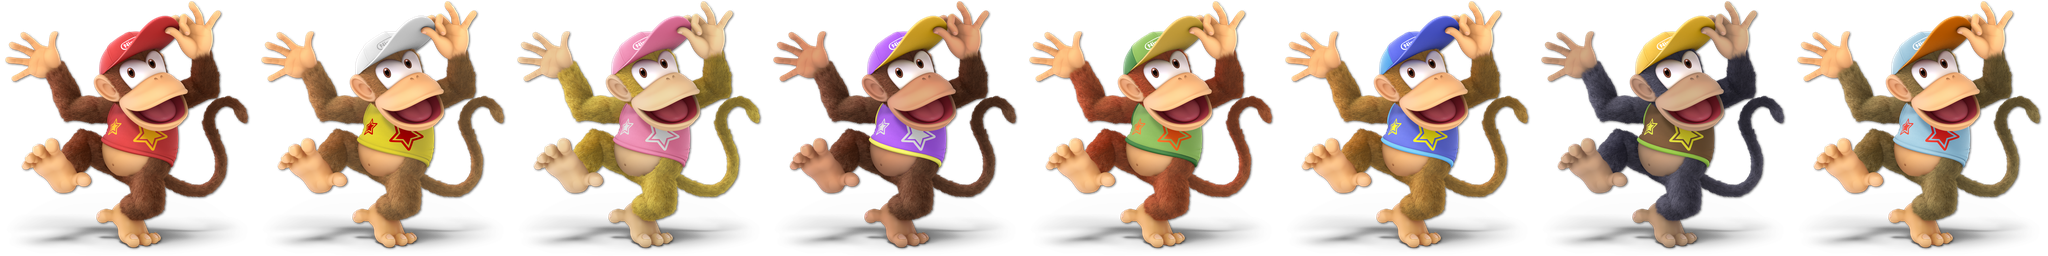 Diddy Kong (Super Smash Bros. Ultimate)